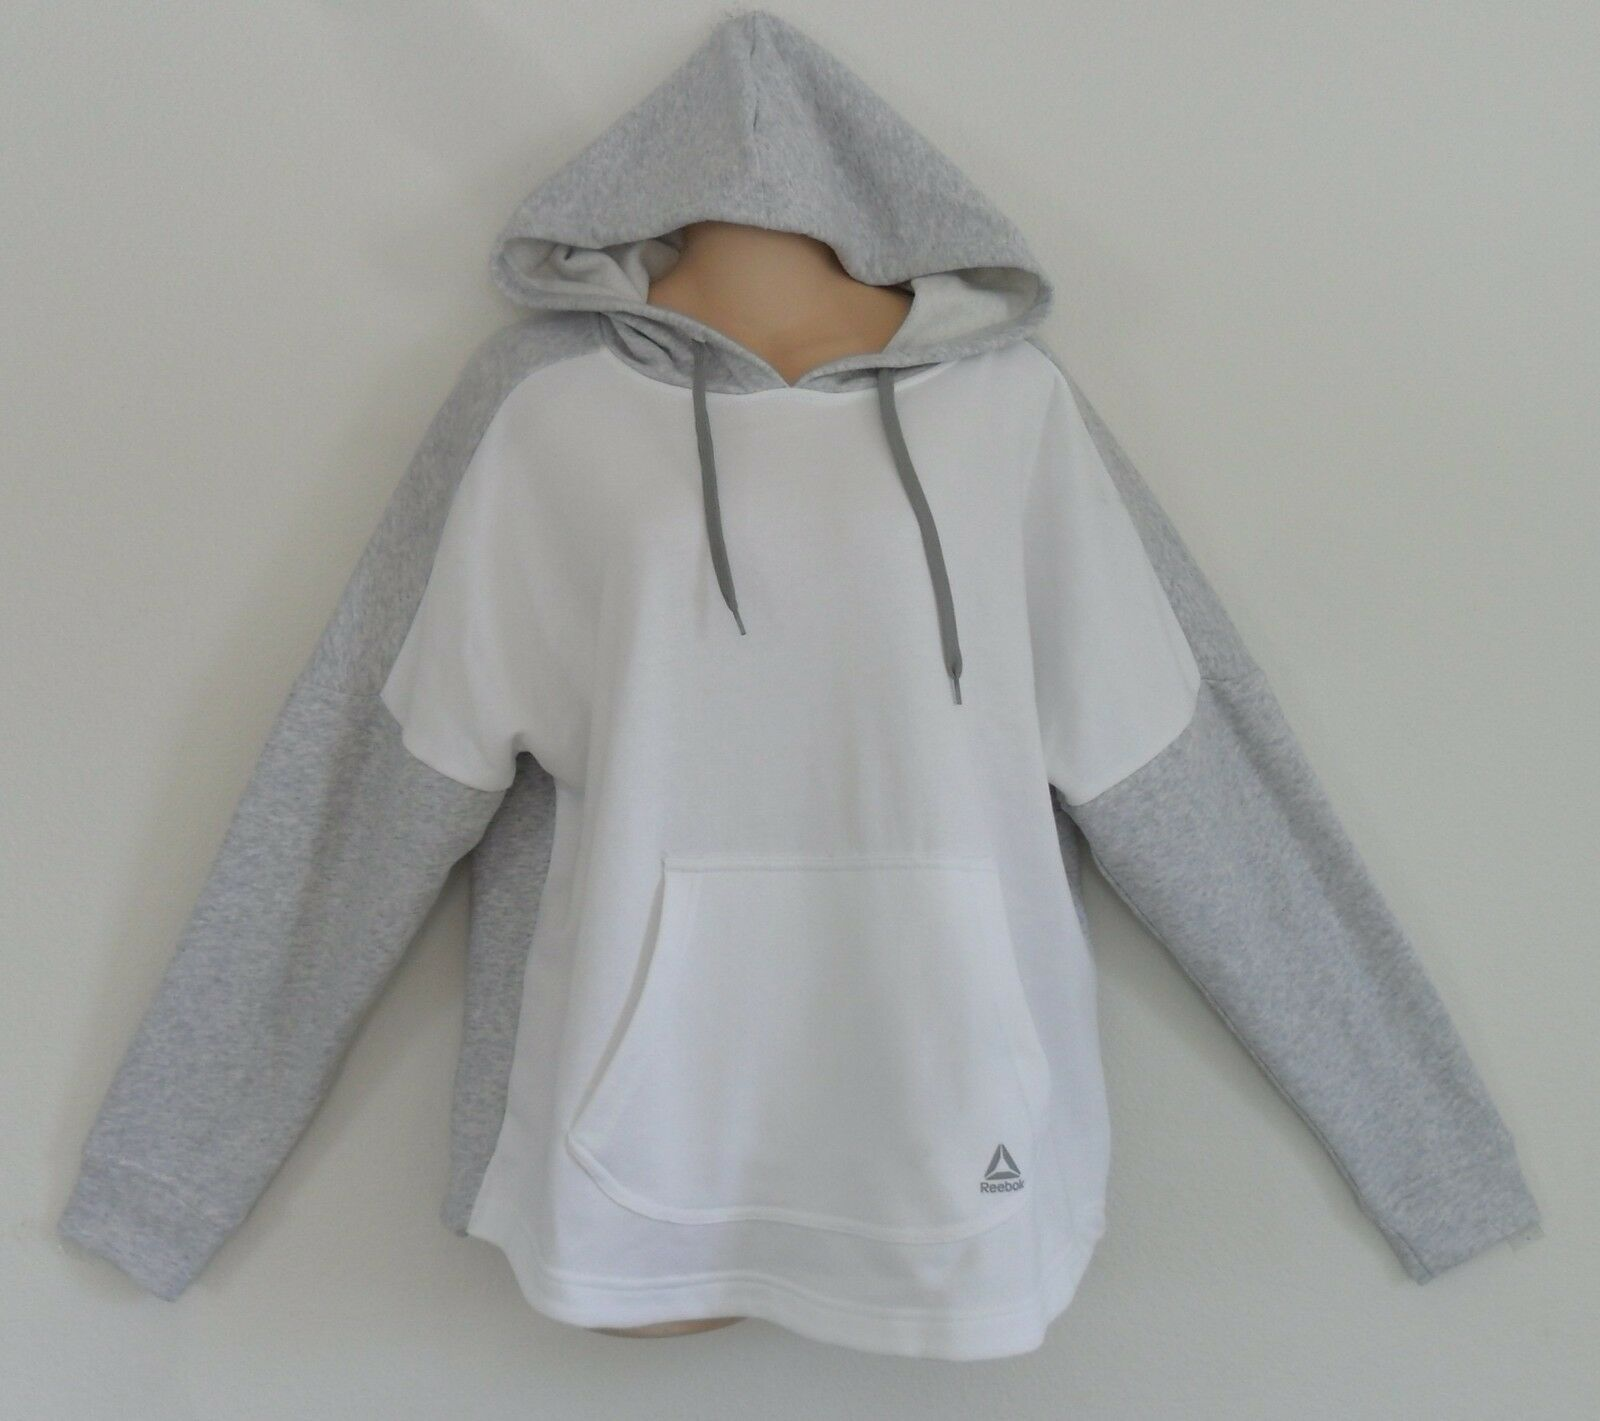 Reebok SPORT ESSENTIALS SECOND LAYER HOODY Sweat Shirt FRENCH TERRYWomen size S